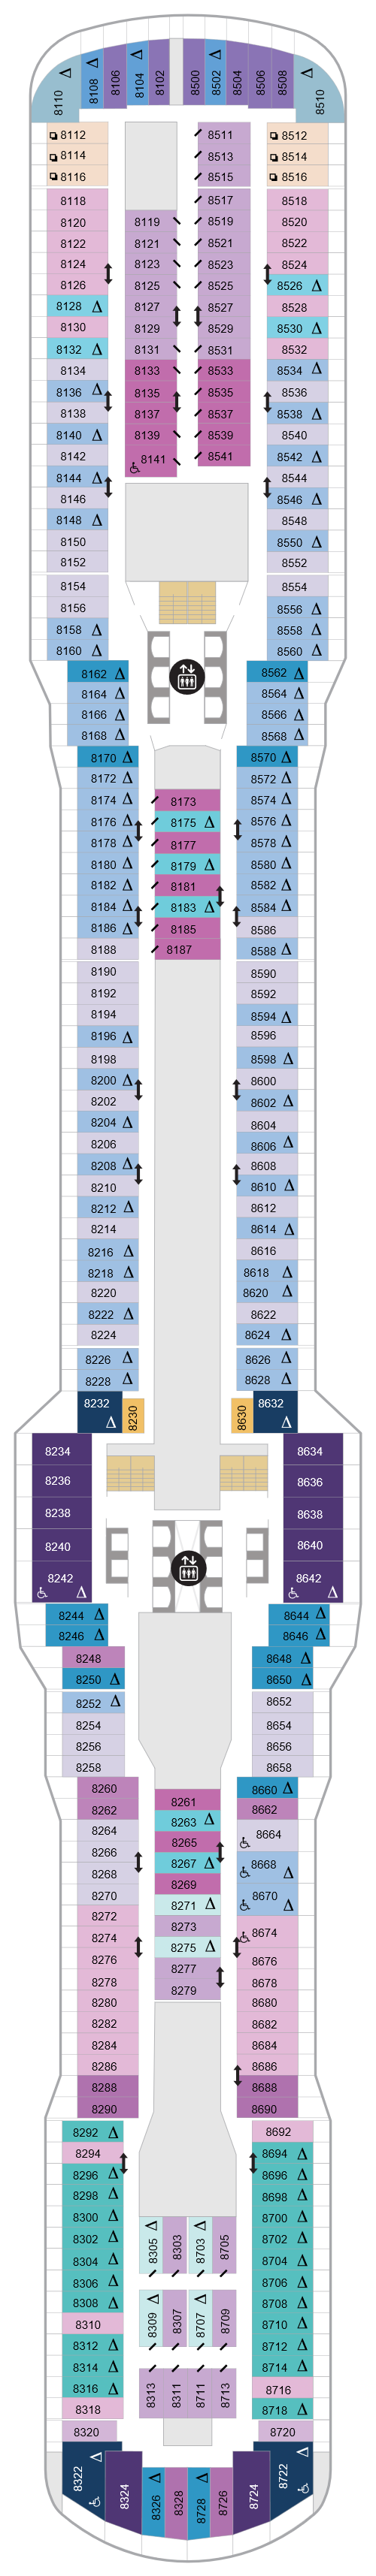 Spectrum Of The Seas Deck 8 layout